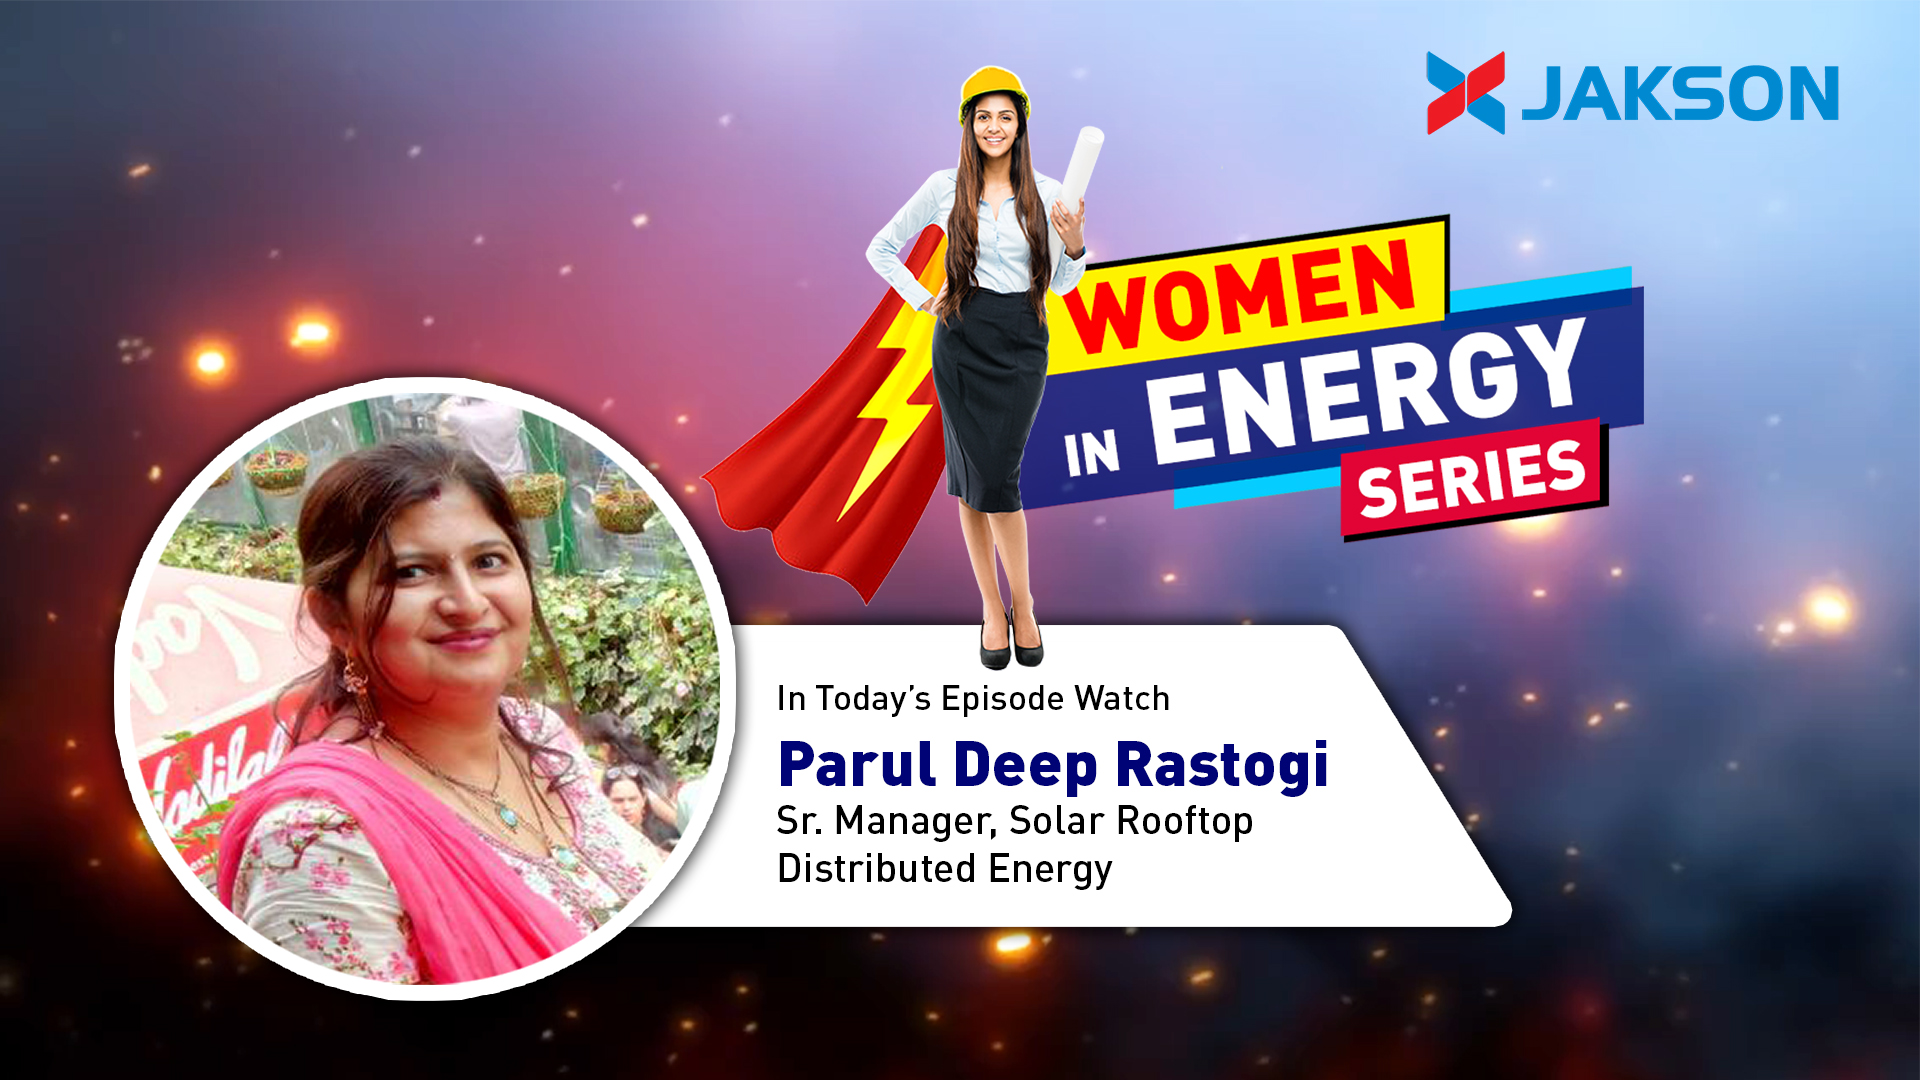 Women in Energy - Episode 5 Watch Ms. Parul Rastogi, Sr. Manager Solar Rooftop Distributed Energy